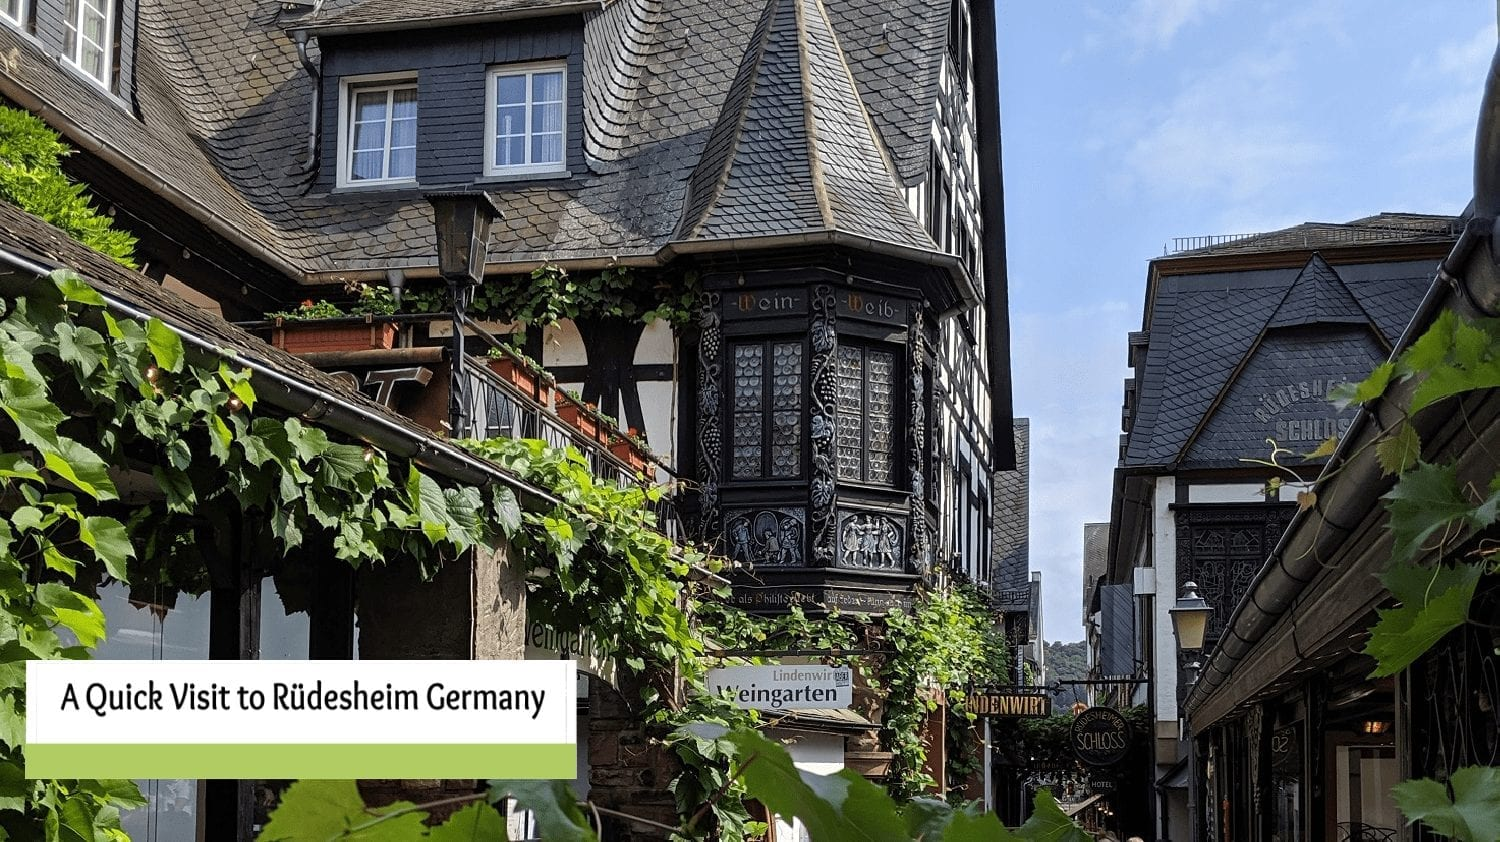 Our Visit to Ruedesheim Germany- A Day isn't Enough